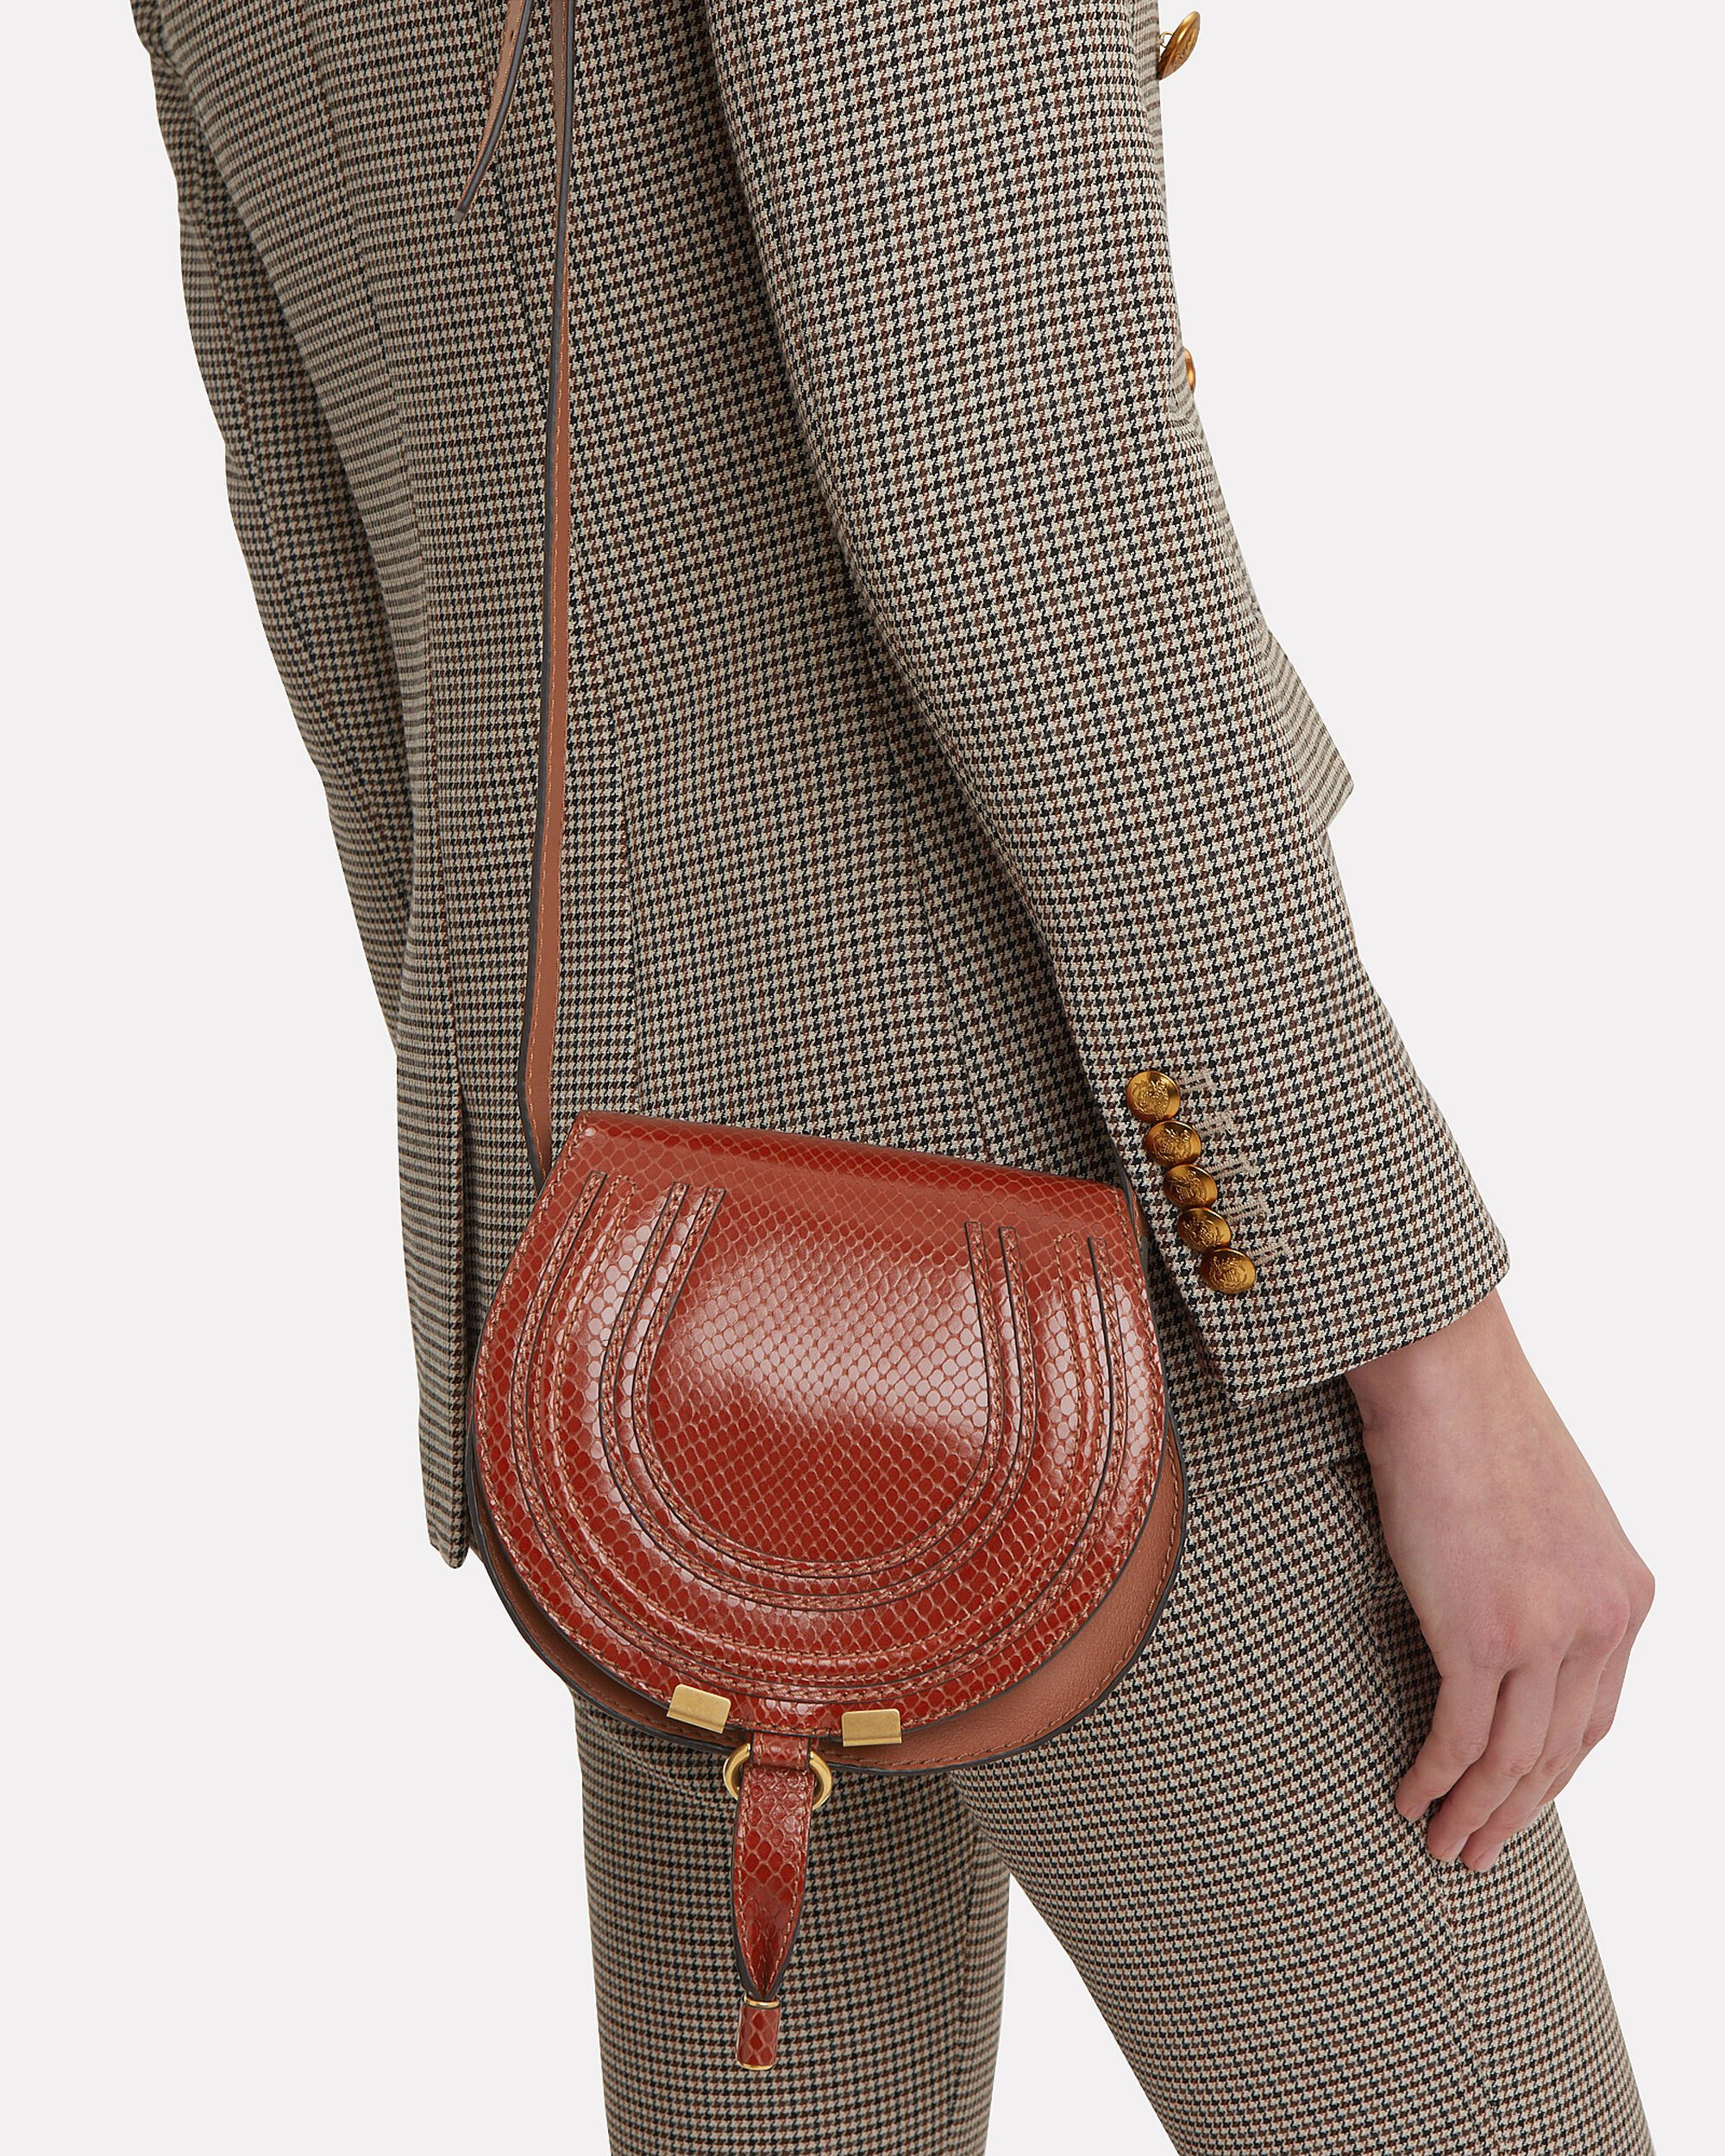 Marcie Snake Print Brown Crossbody Bag, BROWN, hi-res